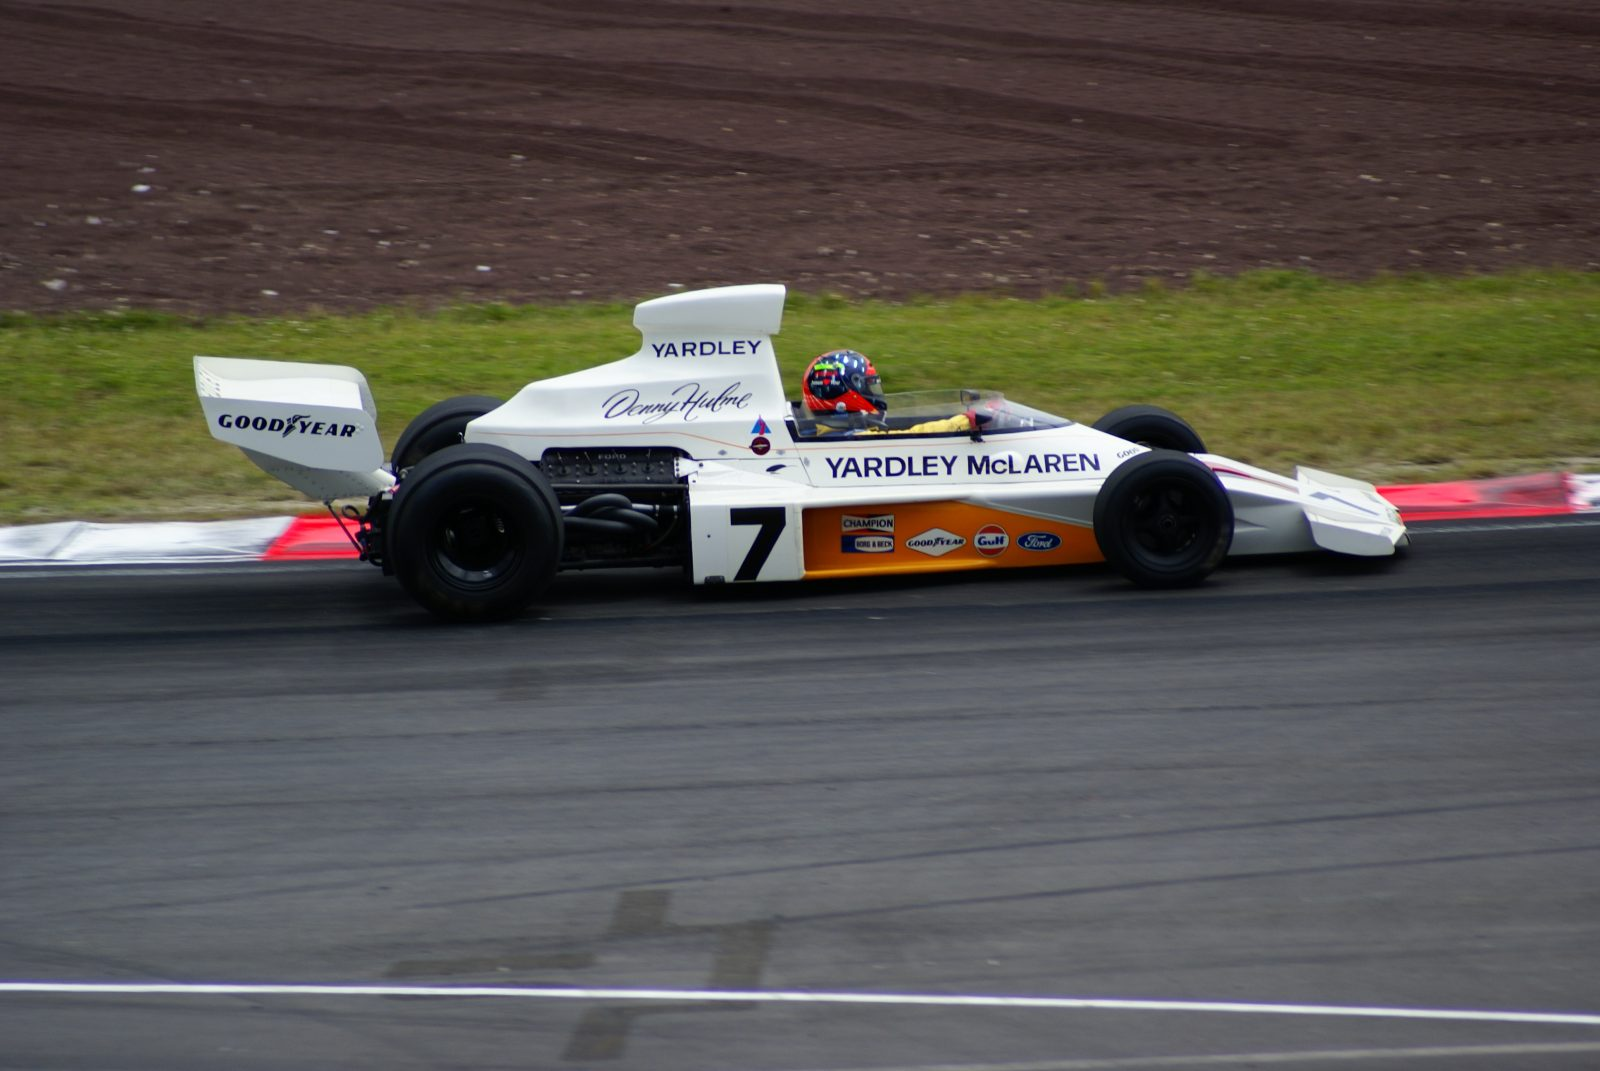 McLaren M23 expected to race at the Taupo Historic Grand Prix